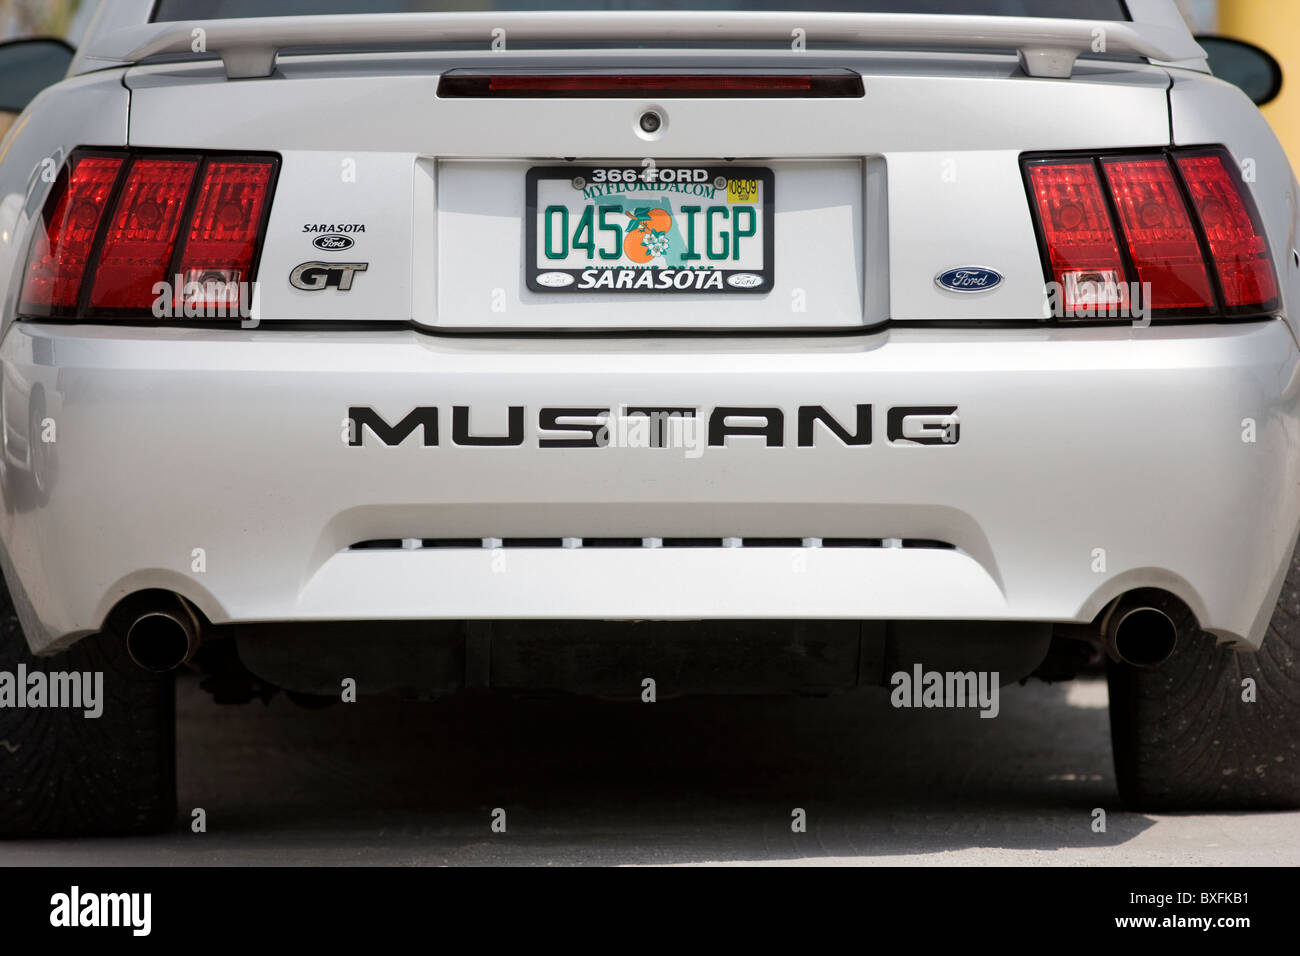 Vehicle registration plate on Ford Mustang GT sports vehicle in Anna Maria Island, United States of America - Stock Image